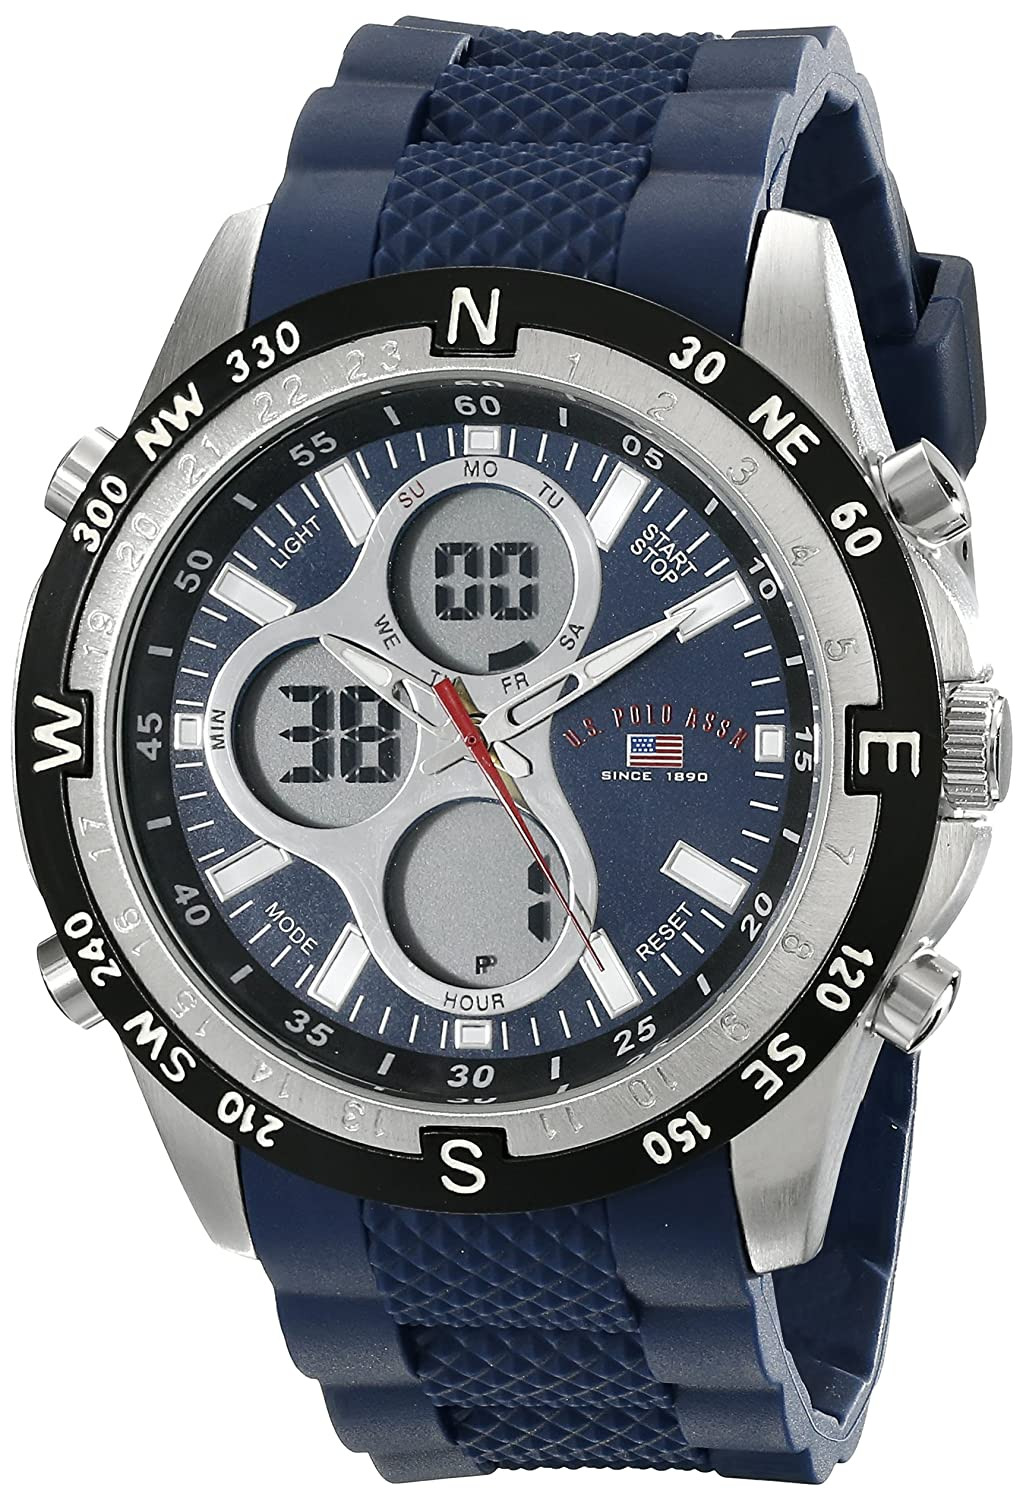 u s polo assn sport men s us8170 black and gunmetal tone u s polo assn sport men s us9137 blue silicone analog digital sport watch